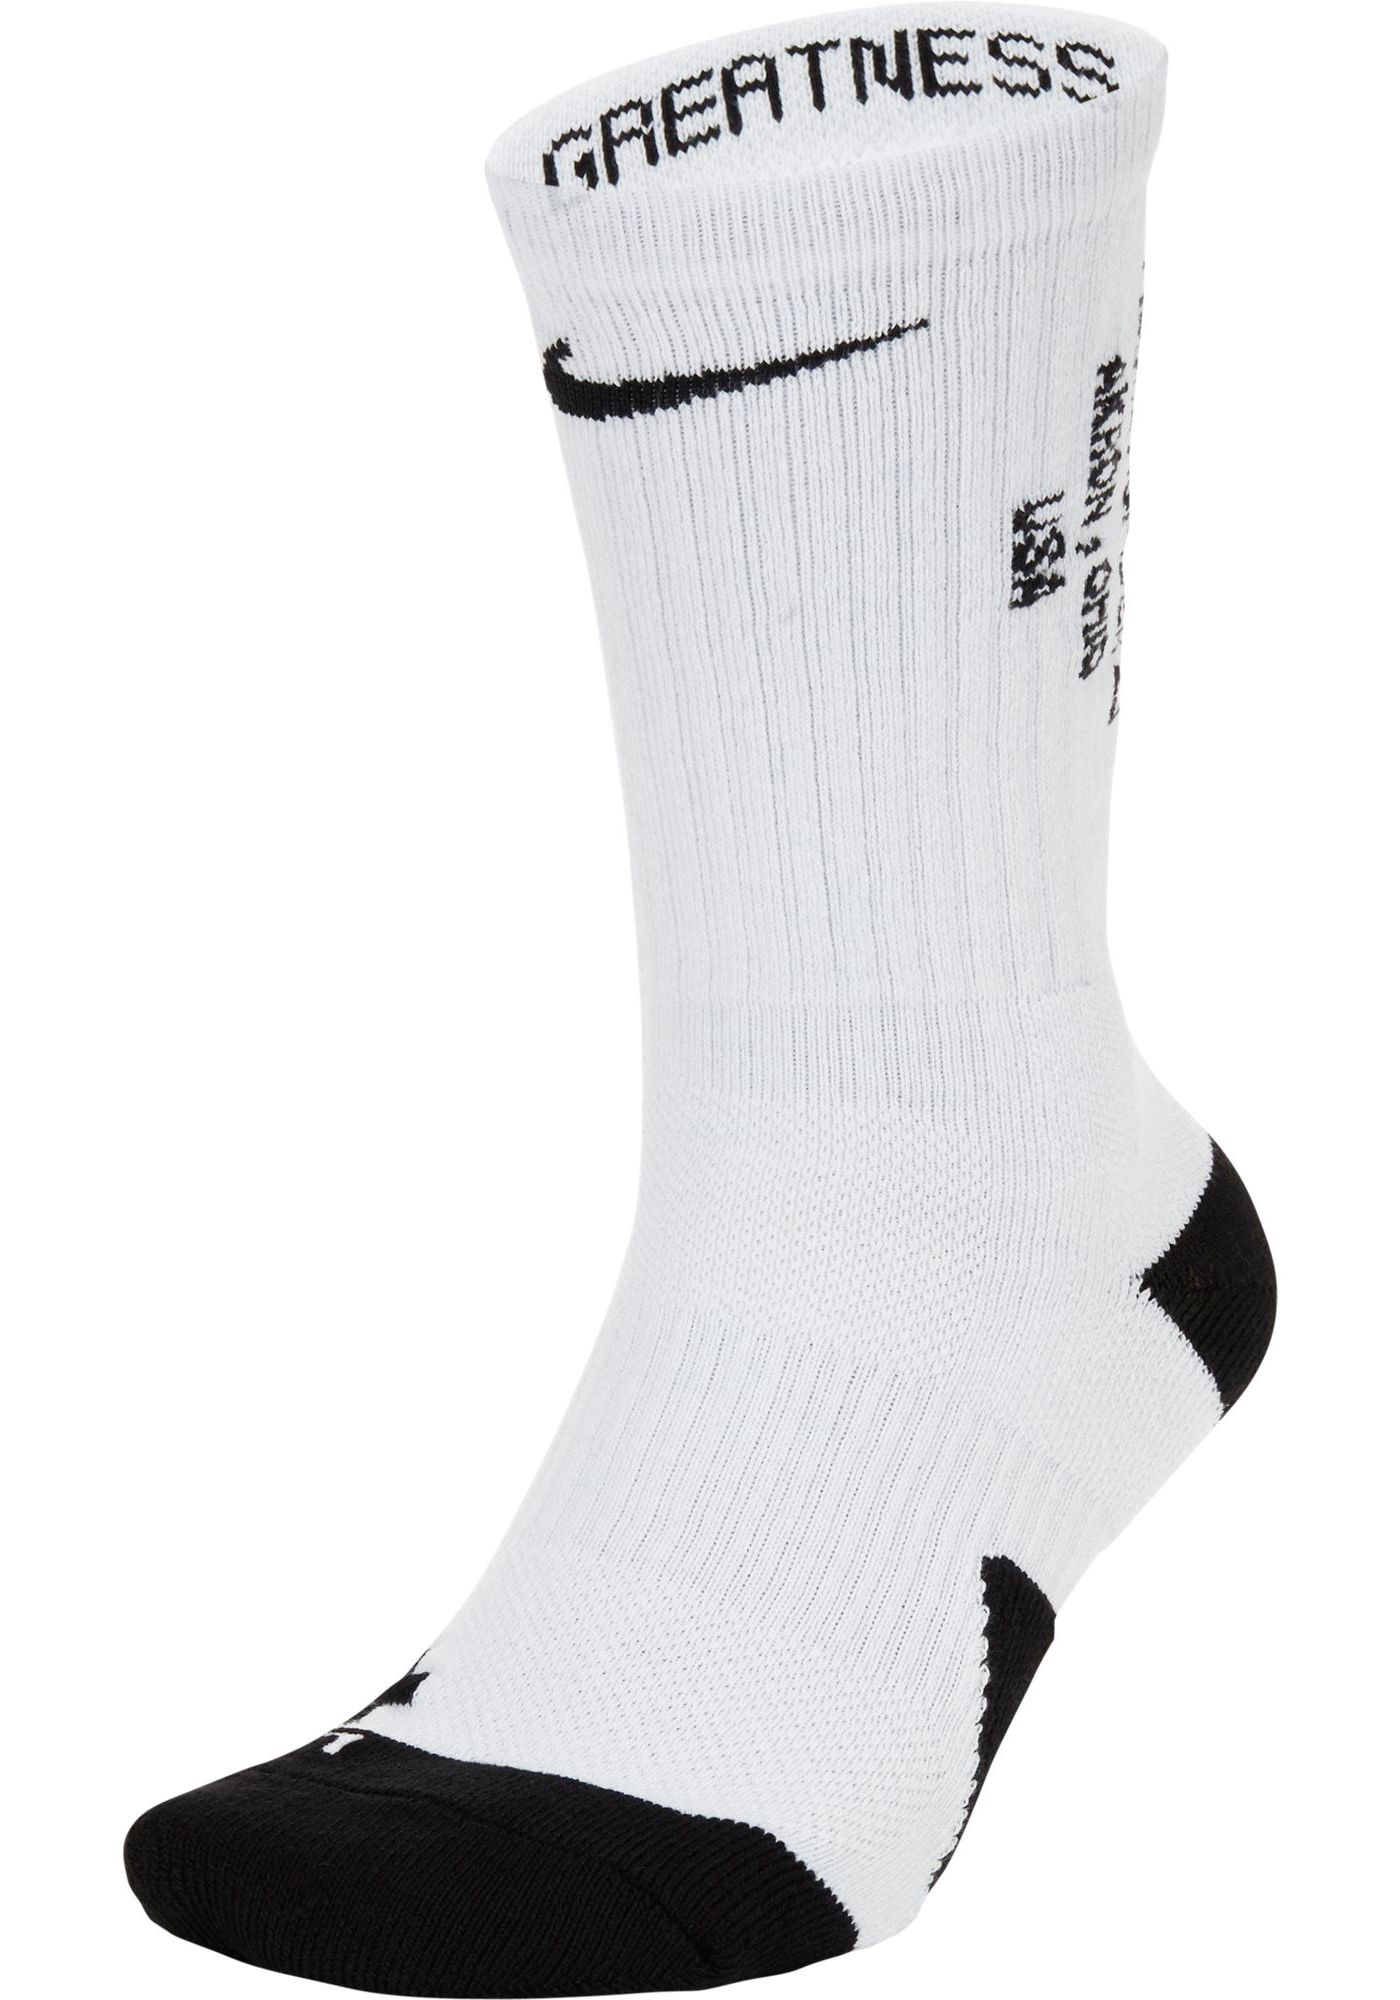 Nike Men's Lebron Elite Crew Socks